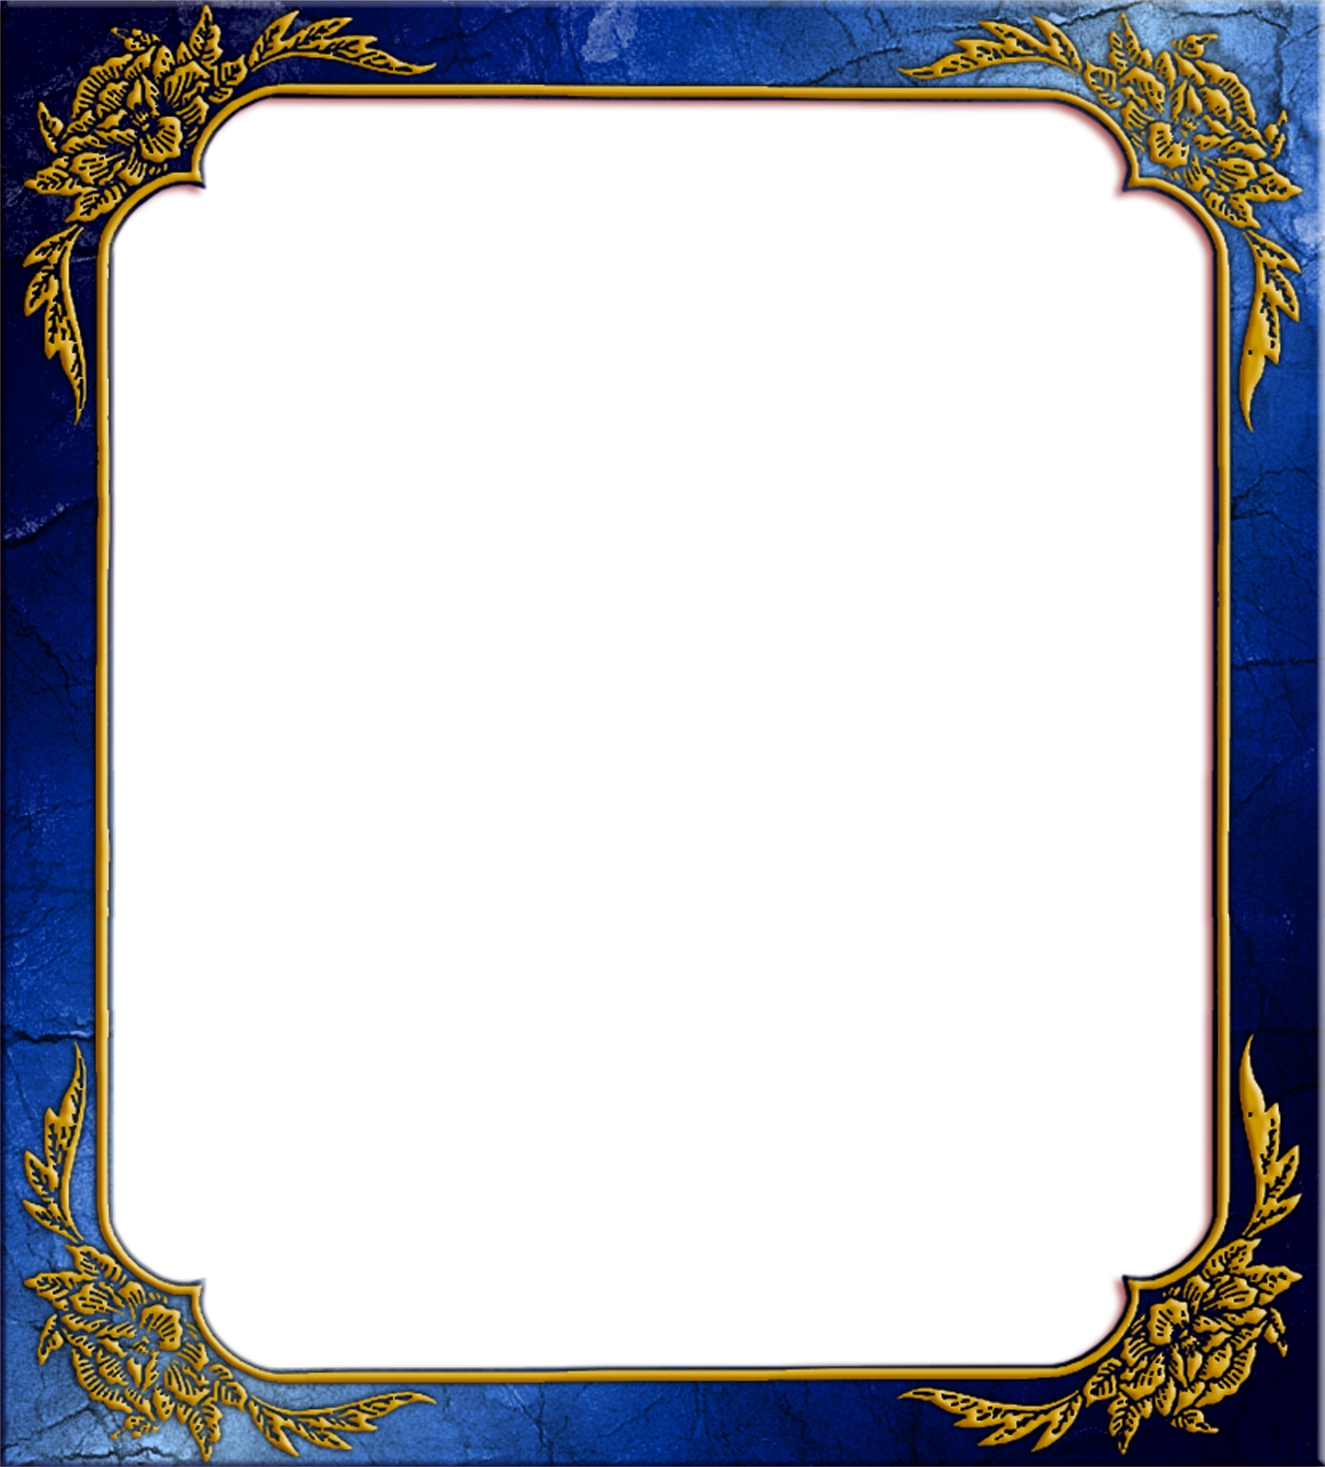 gt;gt; Objects gt;gt; Photo Frame gt; Blue photo frame with Corner P